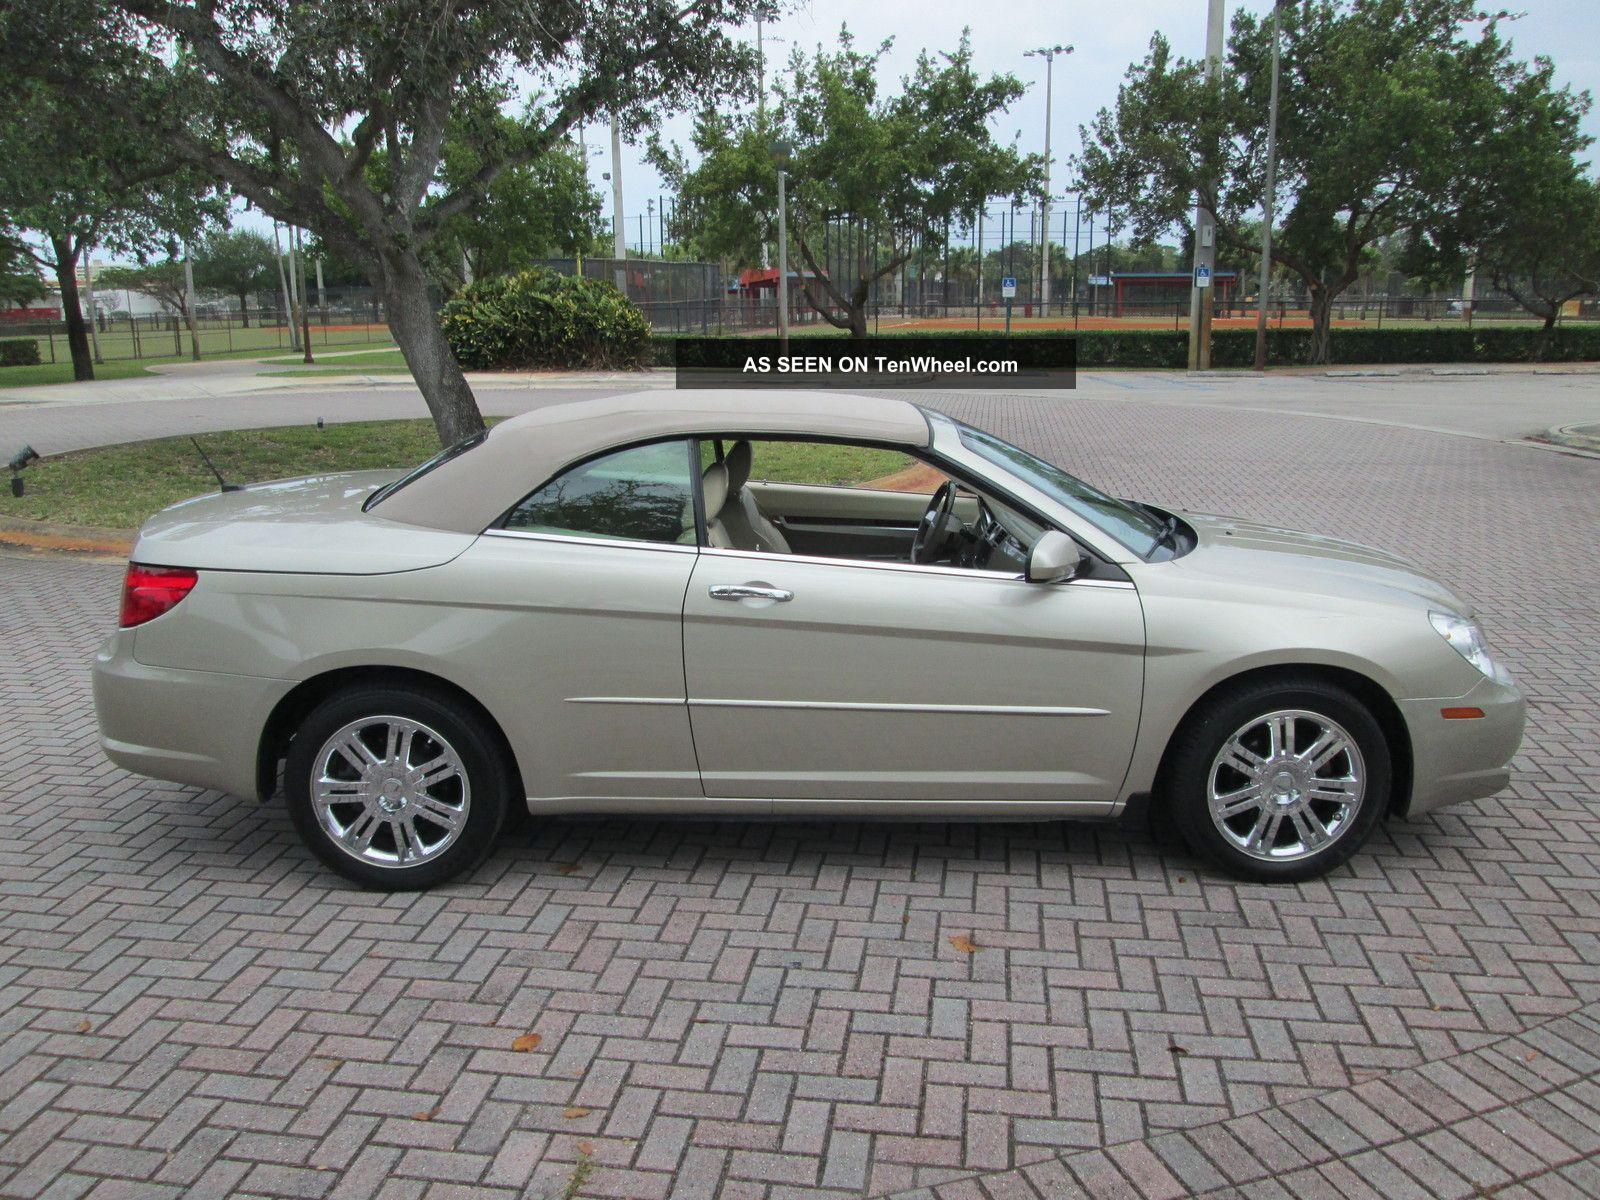 2008 chrysler sebring limited convertible fla car sebring photo 4. Cars Review. Best American Auto & Cars Review